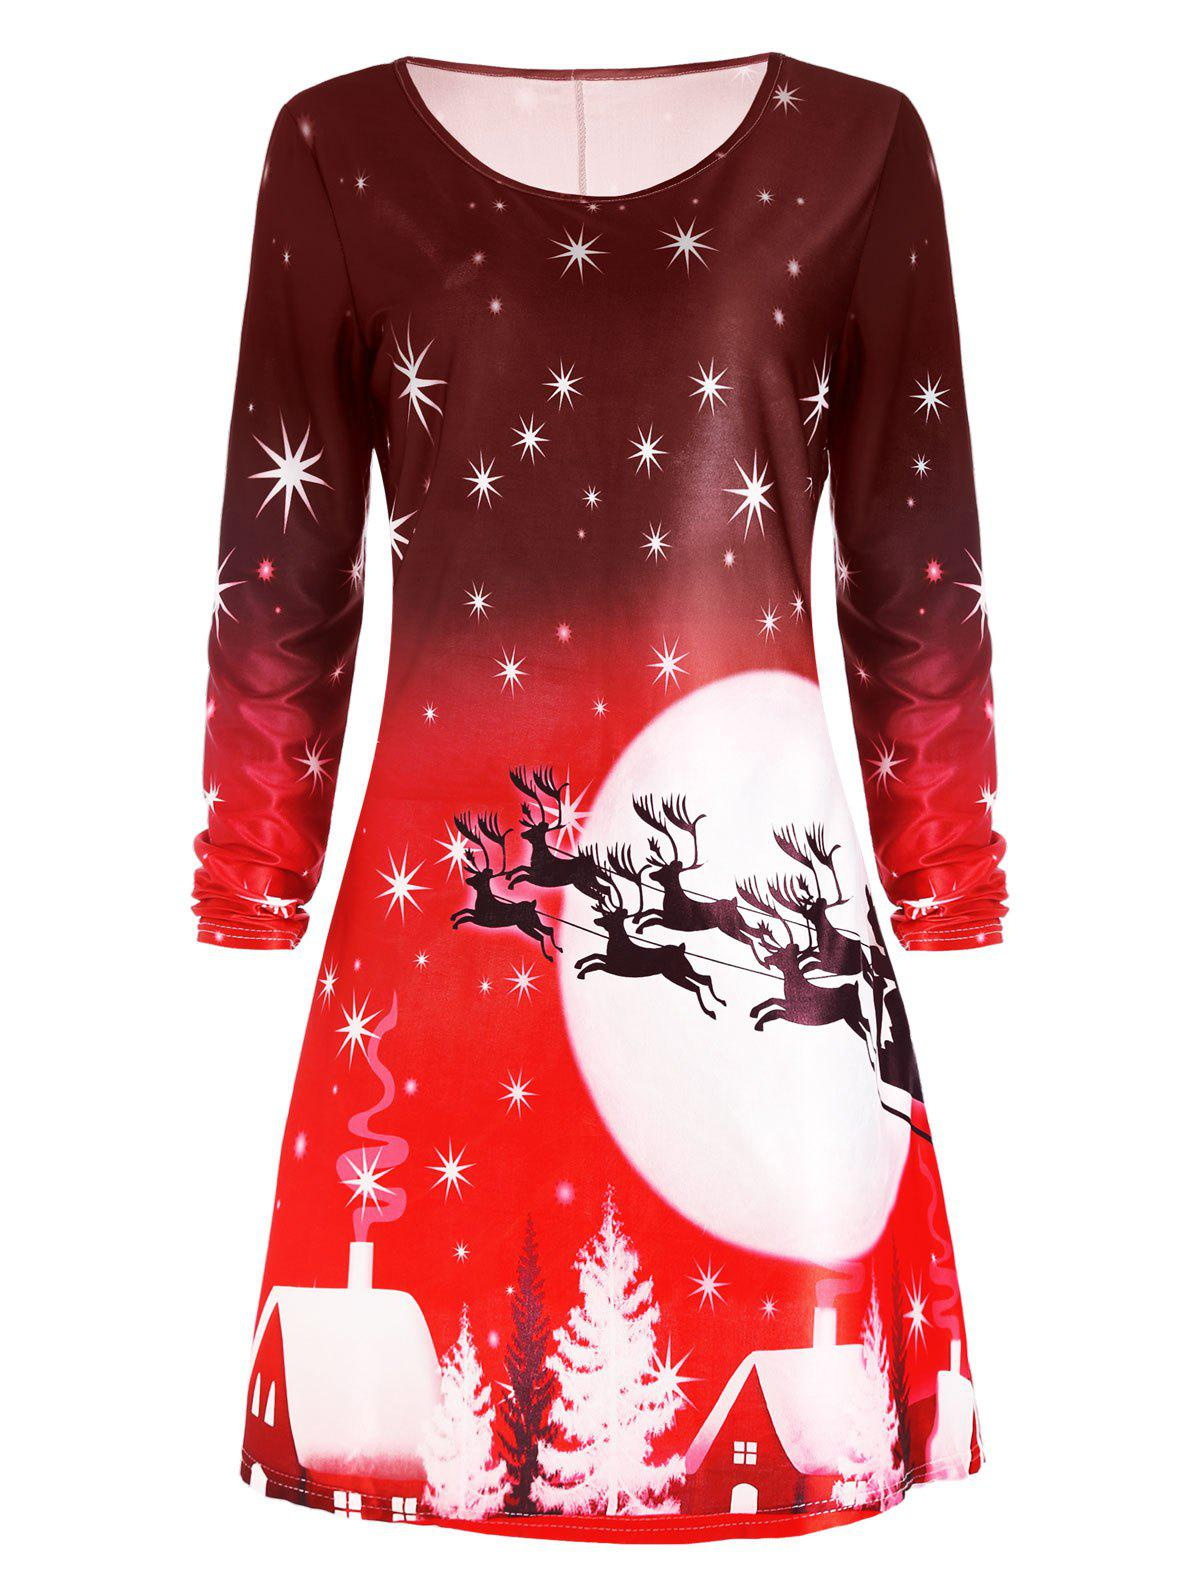 Christmas Deer Long Sleeve Tee Skater DressWOMEN<br><br>Size: XL; Color: RED; Style: Casual; Material: Polyester; Silhouette: A-Line; Dresses Length: Knee-Length; Neckline: Round Collar; Sleeve Length: Long Sleeves; Pattern Type: Animal,Character,Print,Star; With Belt: No; Season: Fall; Weight: 0.2300kg; Package Contents: 1 x Dress; Occasion: Casual;